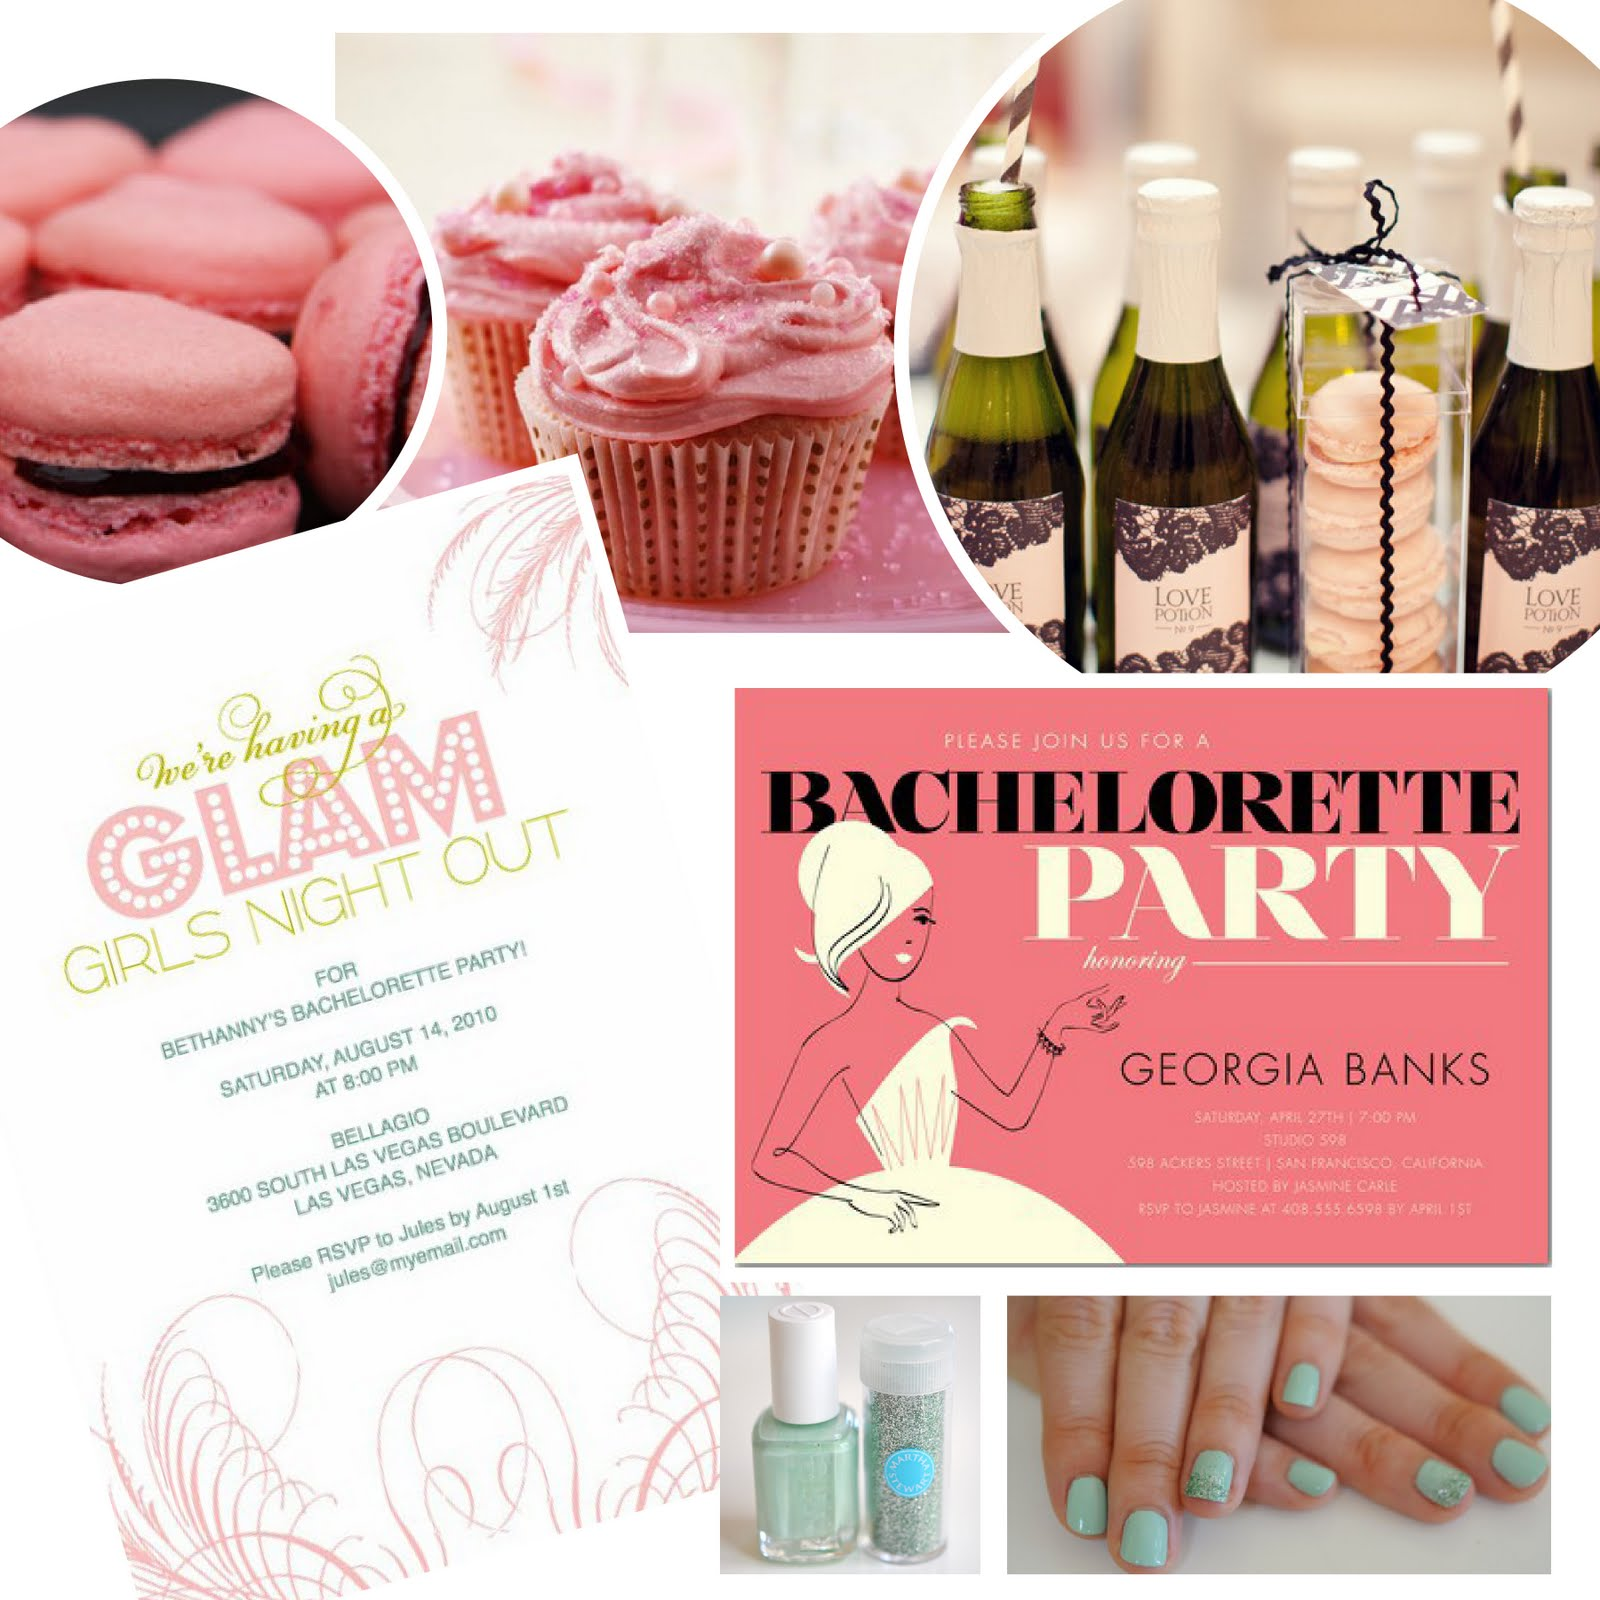 Bachelorette Party Themes That Take the Cake!Name Change ...